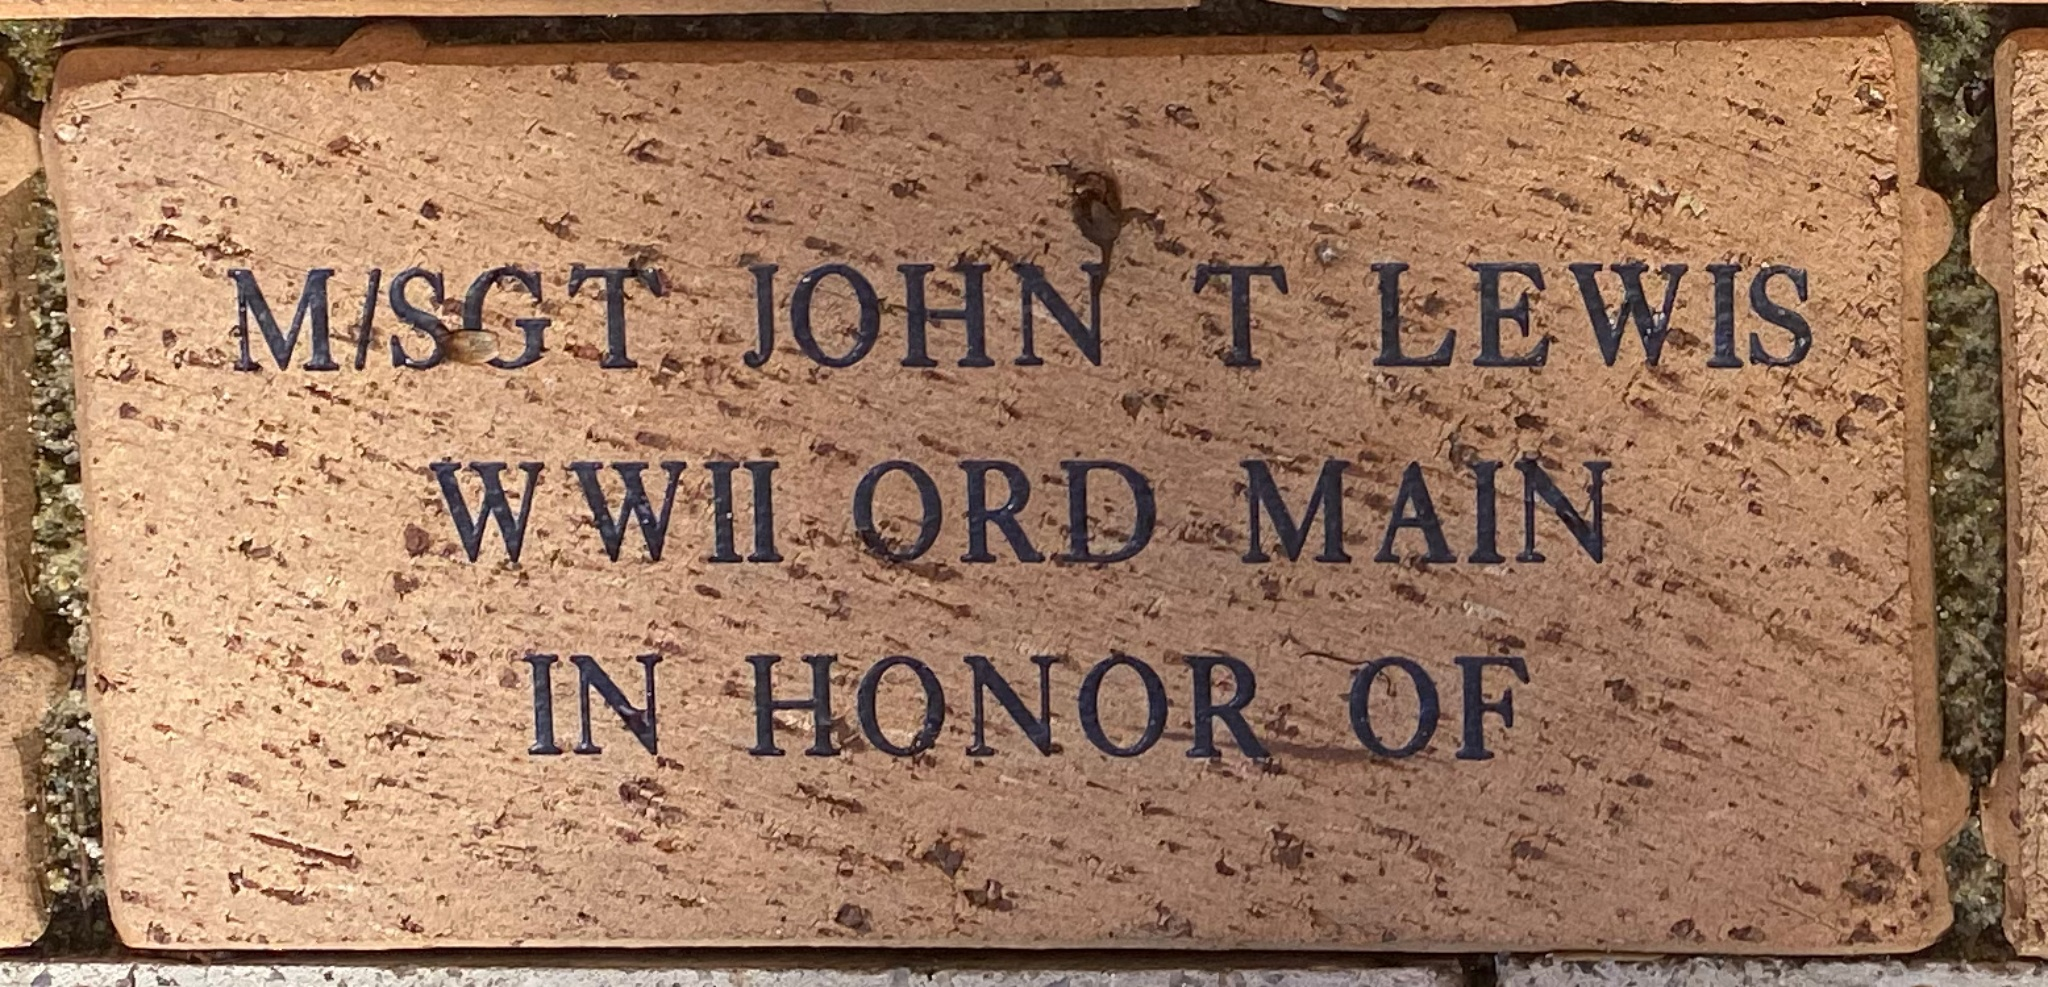 M/SGT JOHN T LEWIS WWII ORD MAIN IN HONOR OF